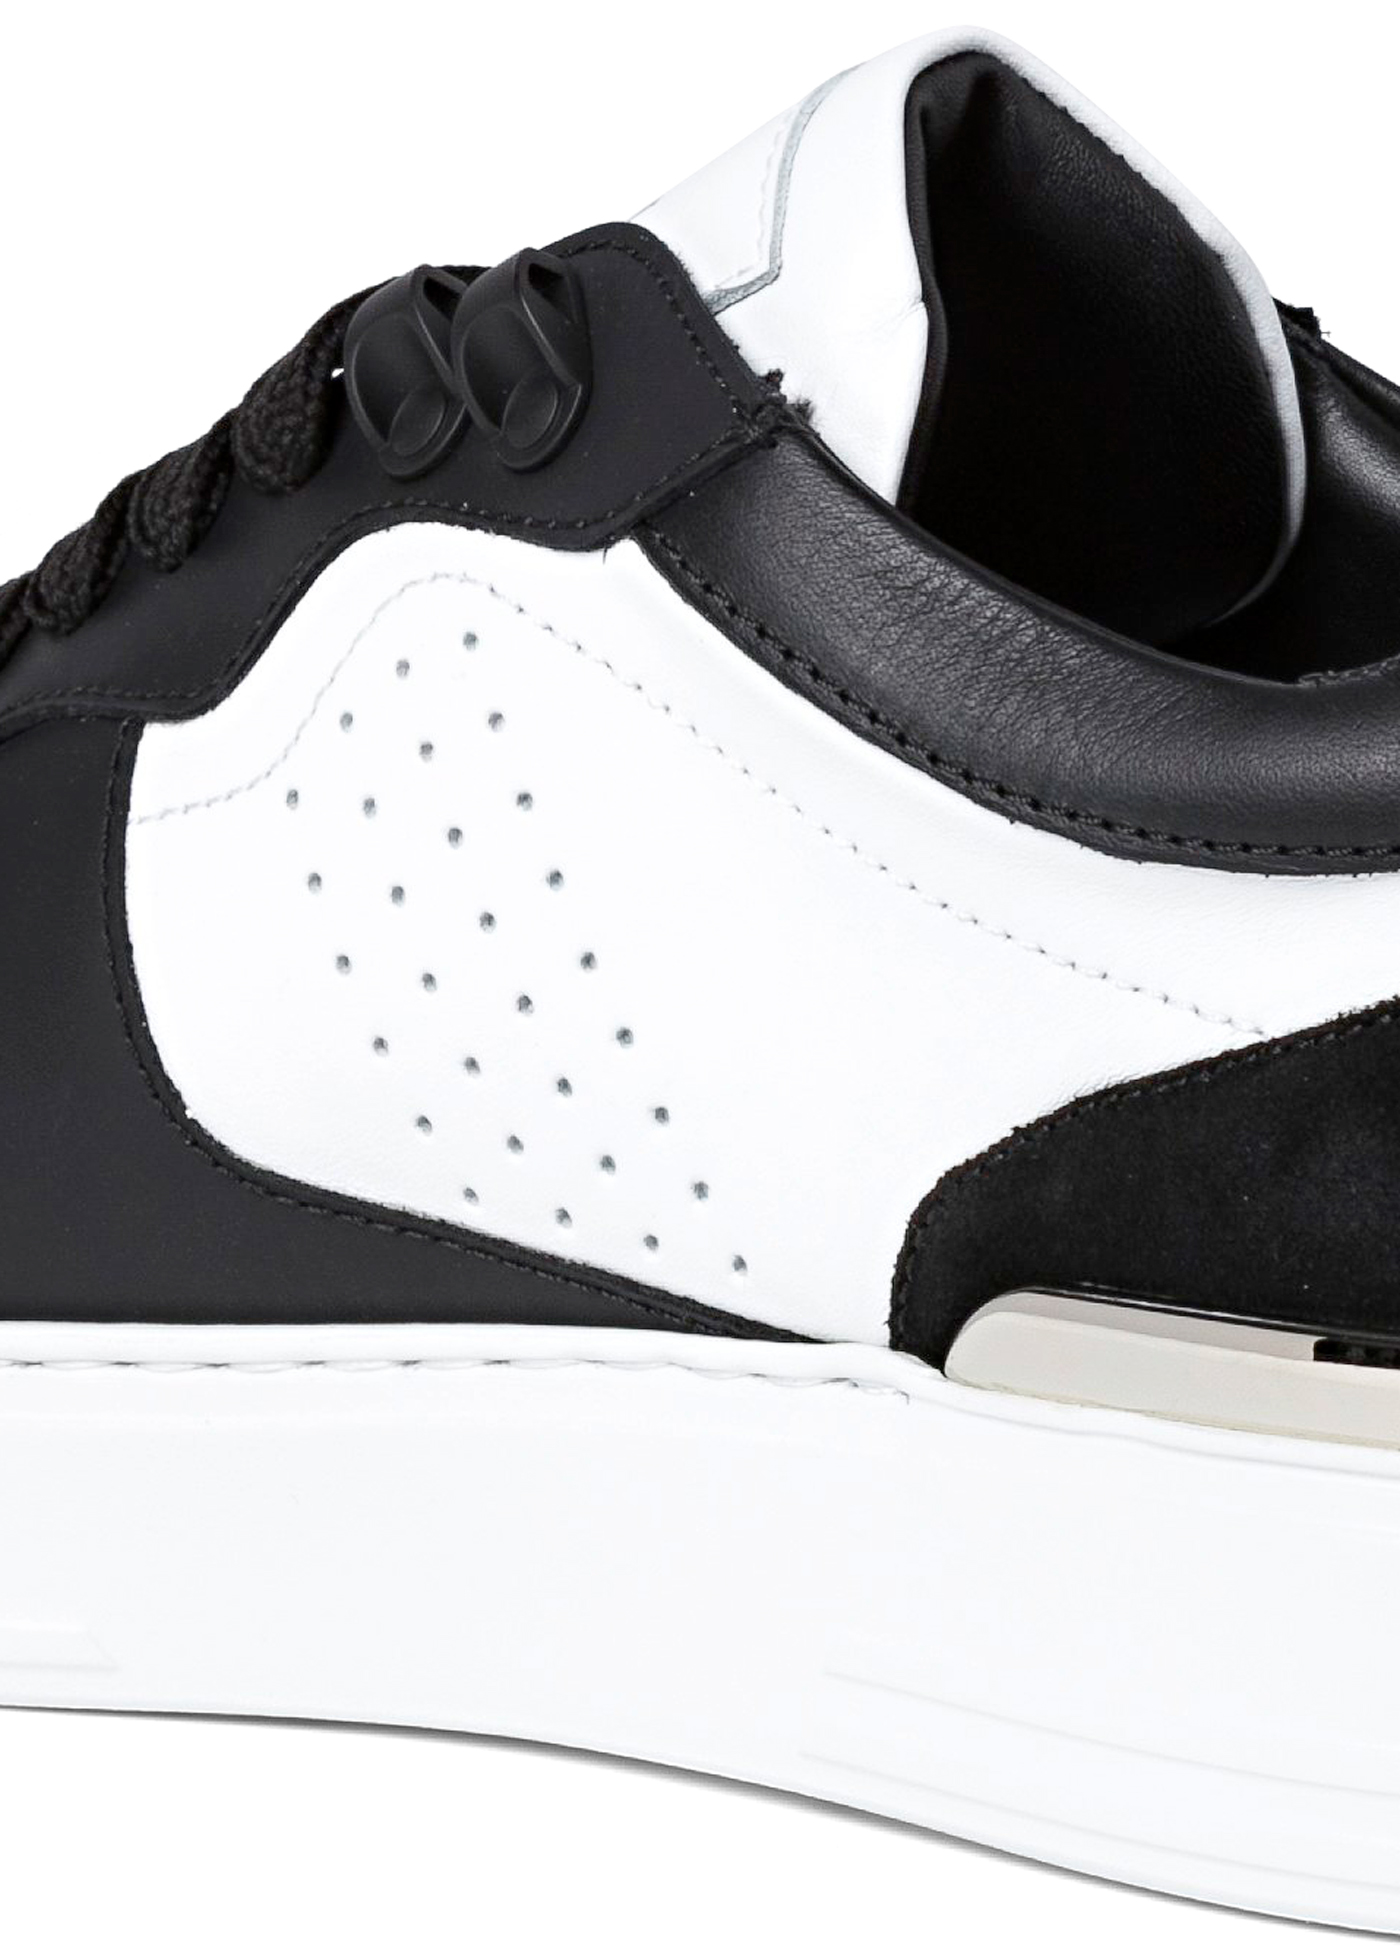 Lo-Top Sneakers mix leathers G.O.A.T. TM image number 3